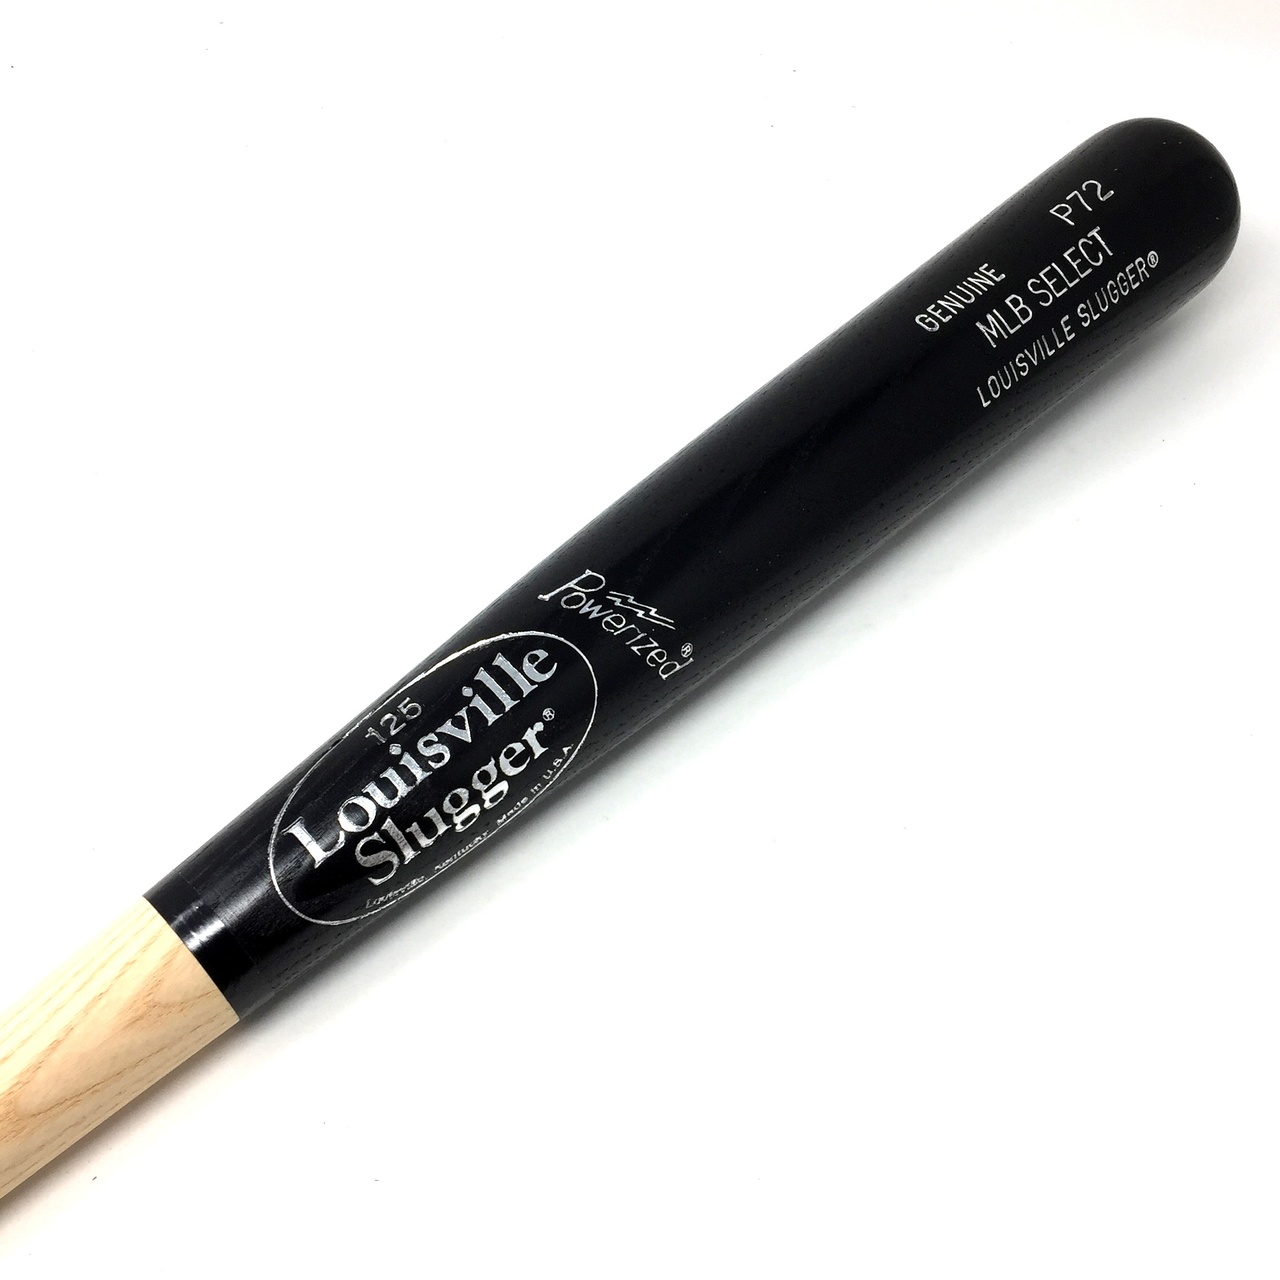 louisville-slugger-p72-mlb-select-ash-black-wood-baseball-bat-33-5-inch WBBP14P72NBK-33.5 Louisville 044277027032 Louisville Slugger P72 Turning Model Wood Baseball Bat. MLB Select Ash